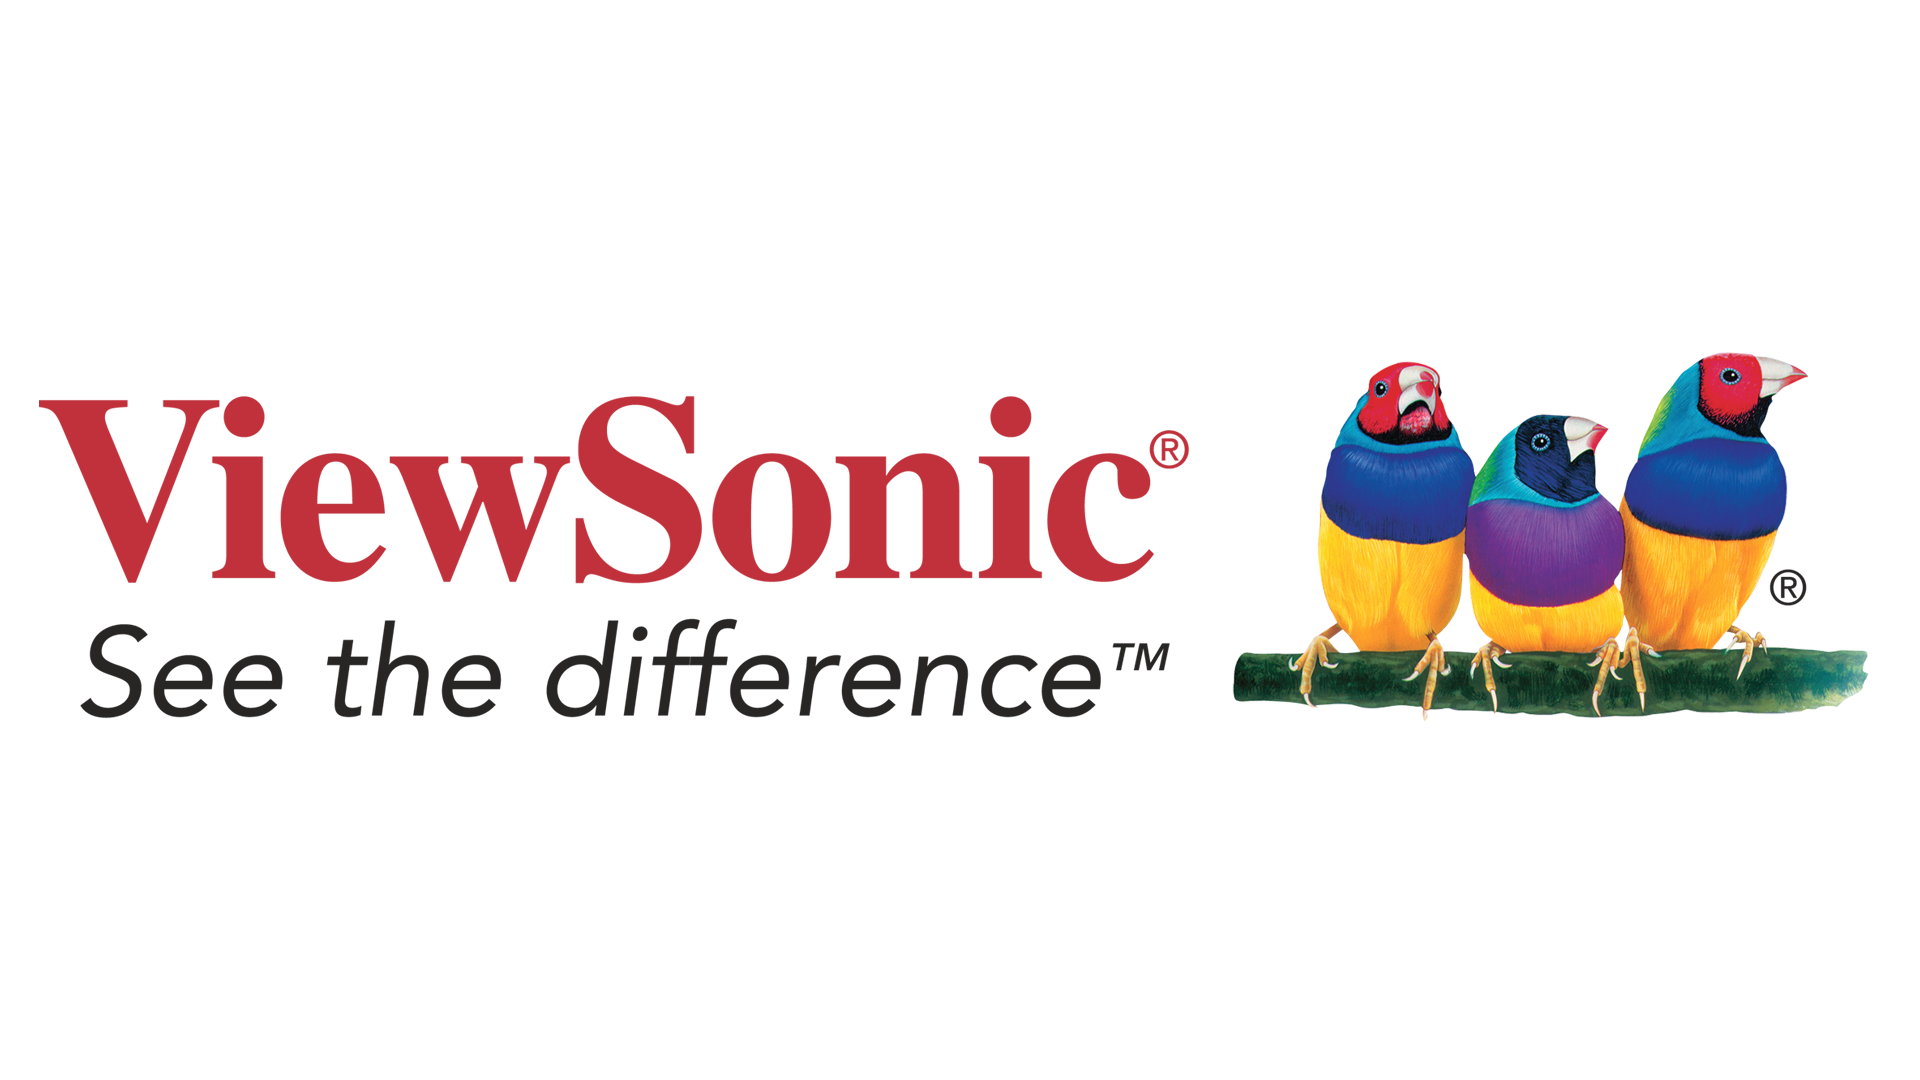 ViewSonic Logo, ViewSonic Symbol, Meaning, History and ...